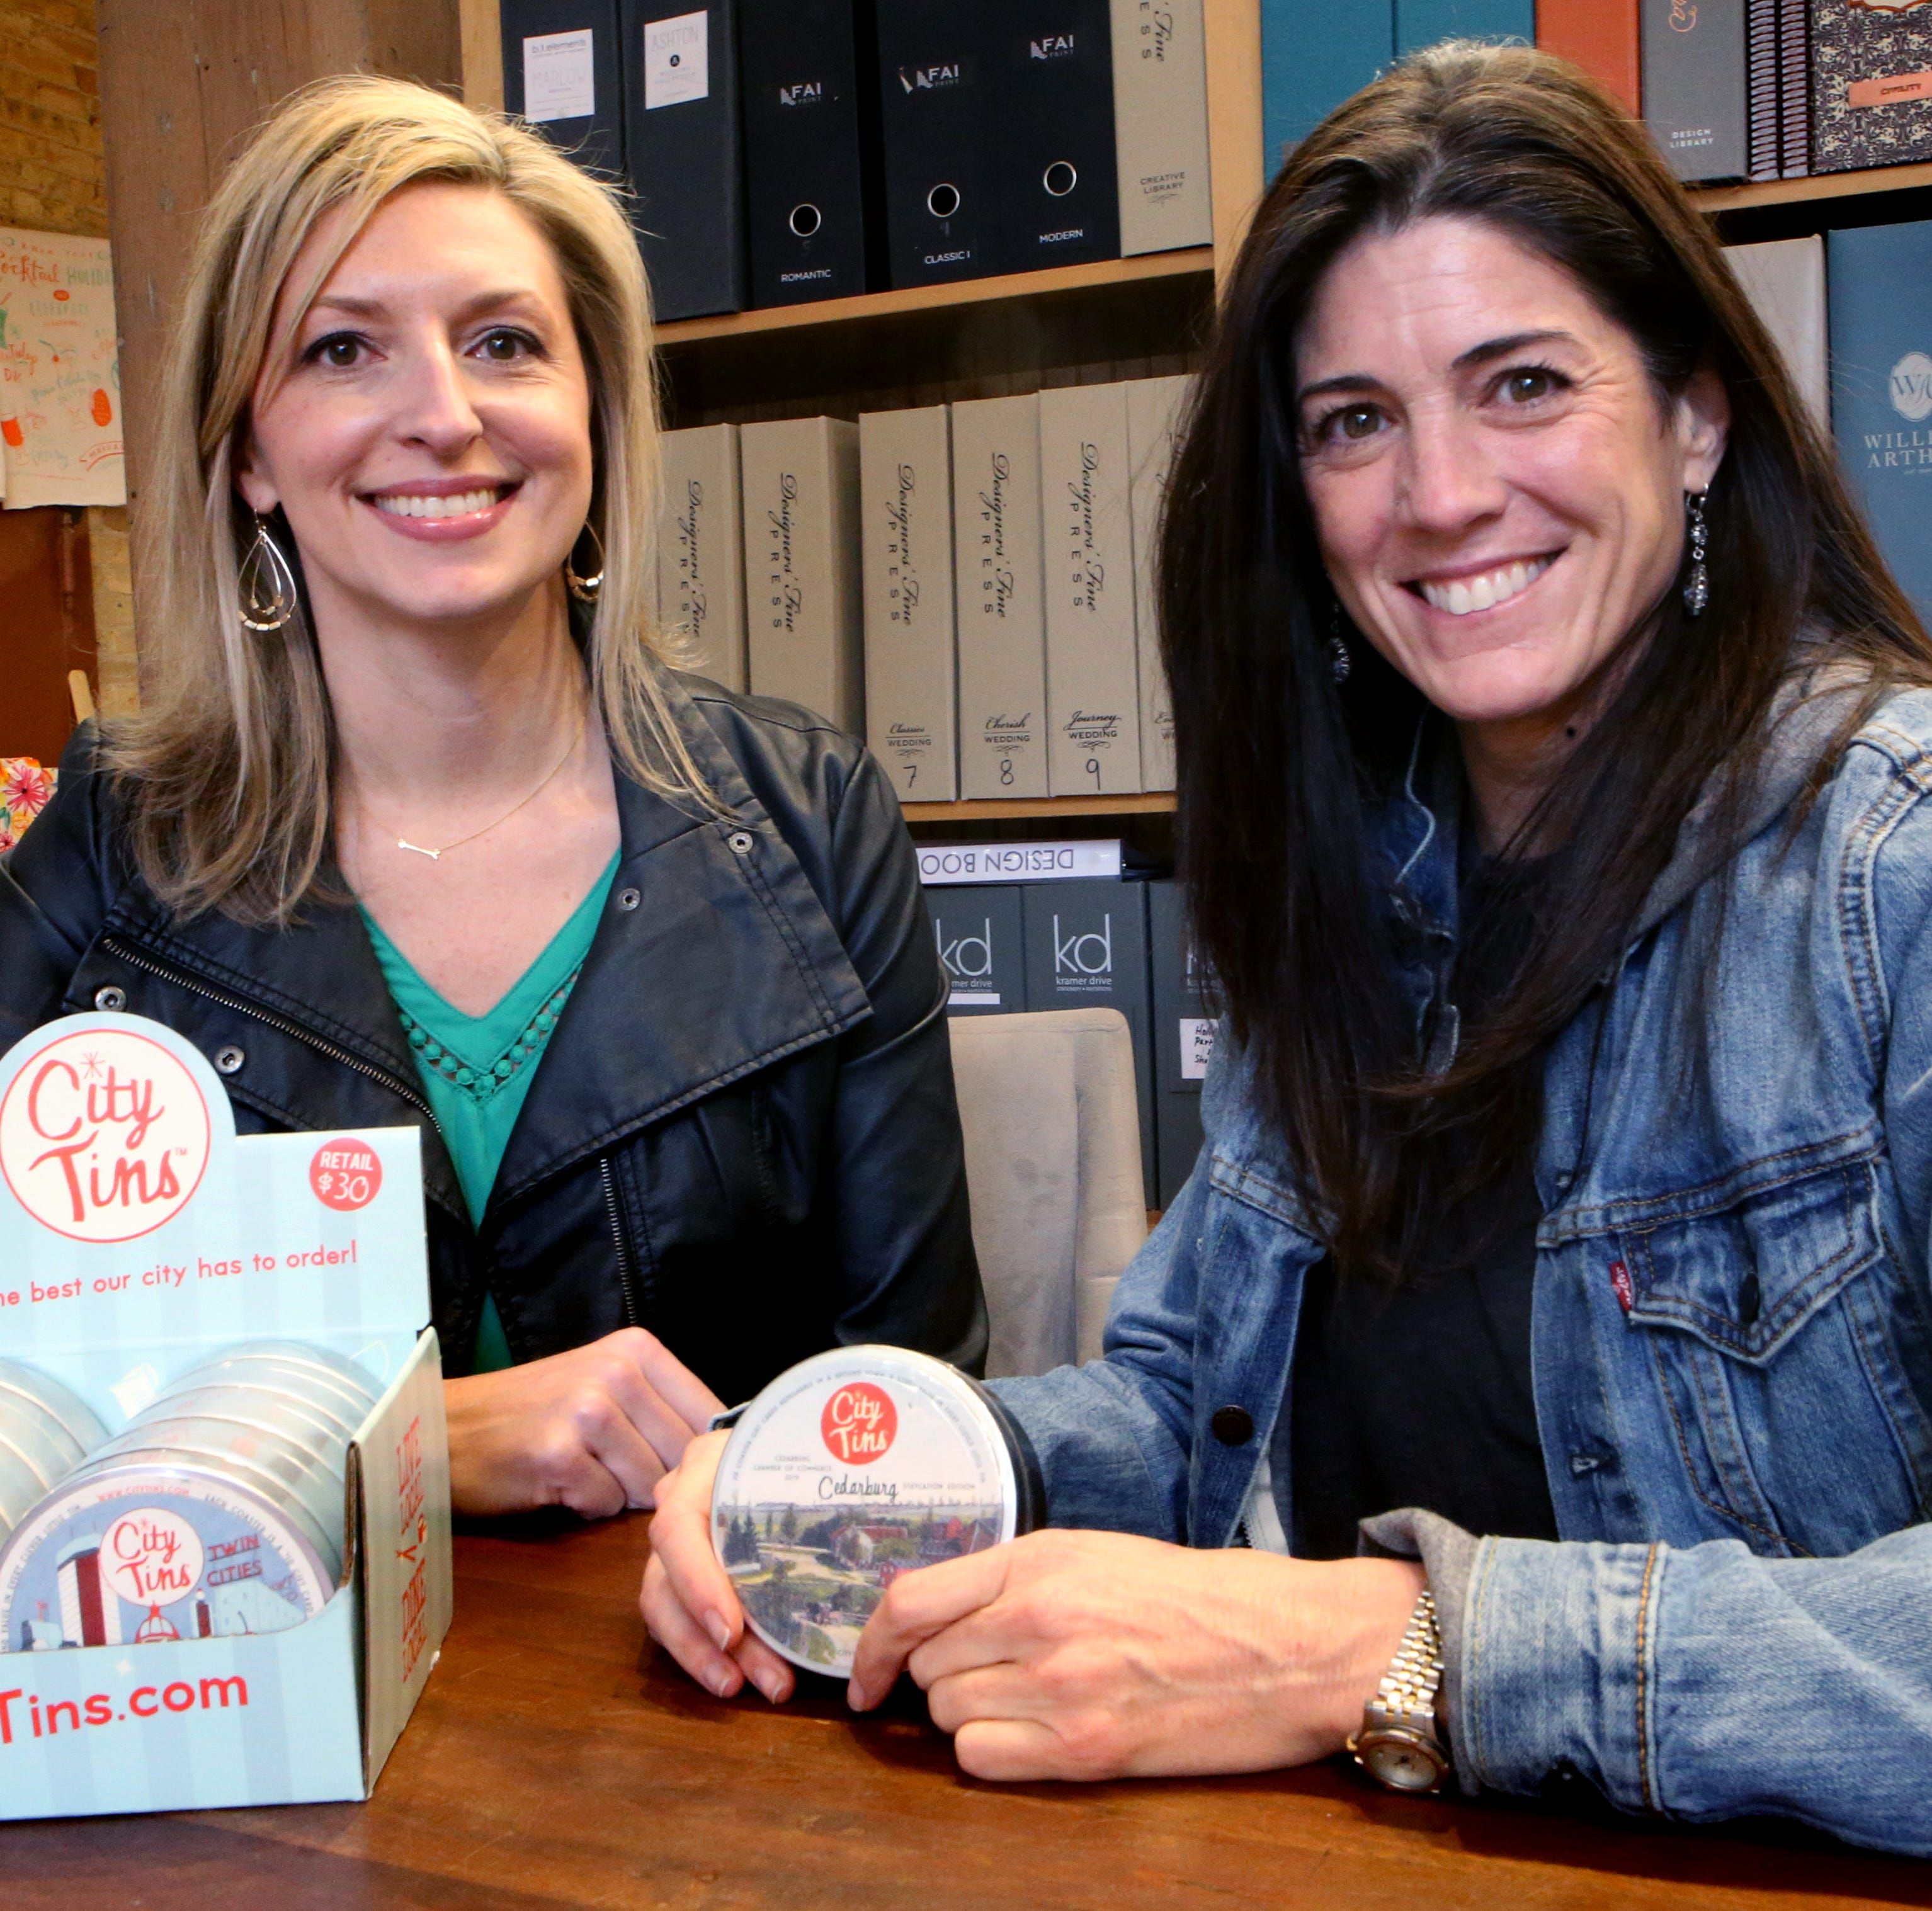 Milwaukee's CityTins celebrates 10 years and expands to Lake Country and Twin Cities